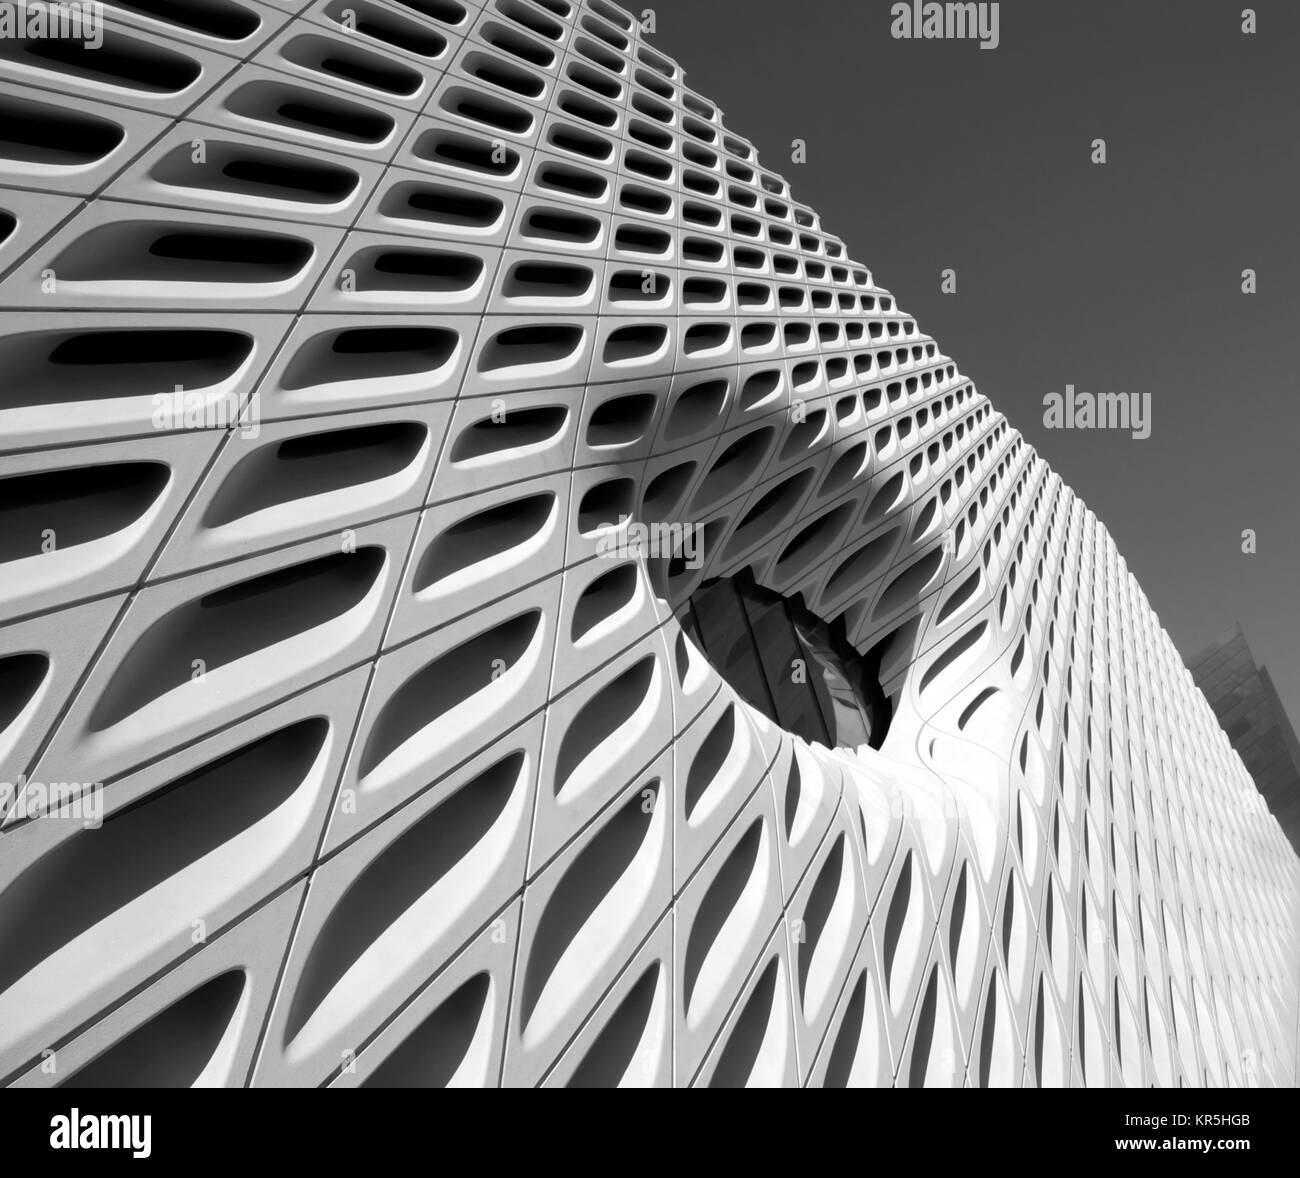 Window detail of The Broad Museum building exterior on South Grand Avenue in downtown Los Angeles, LA California - Stock Image